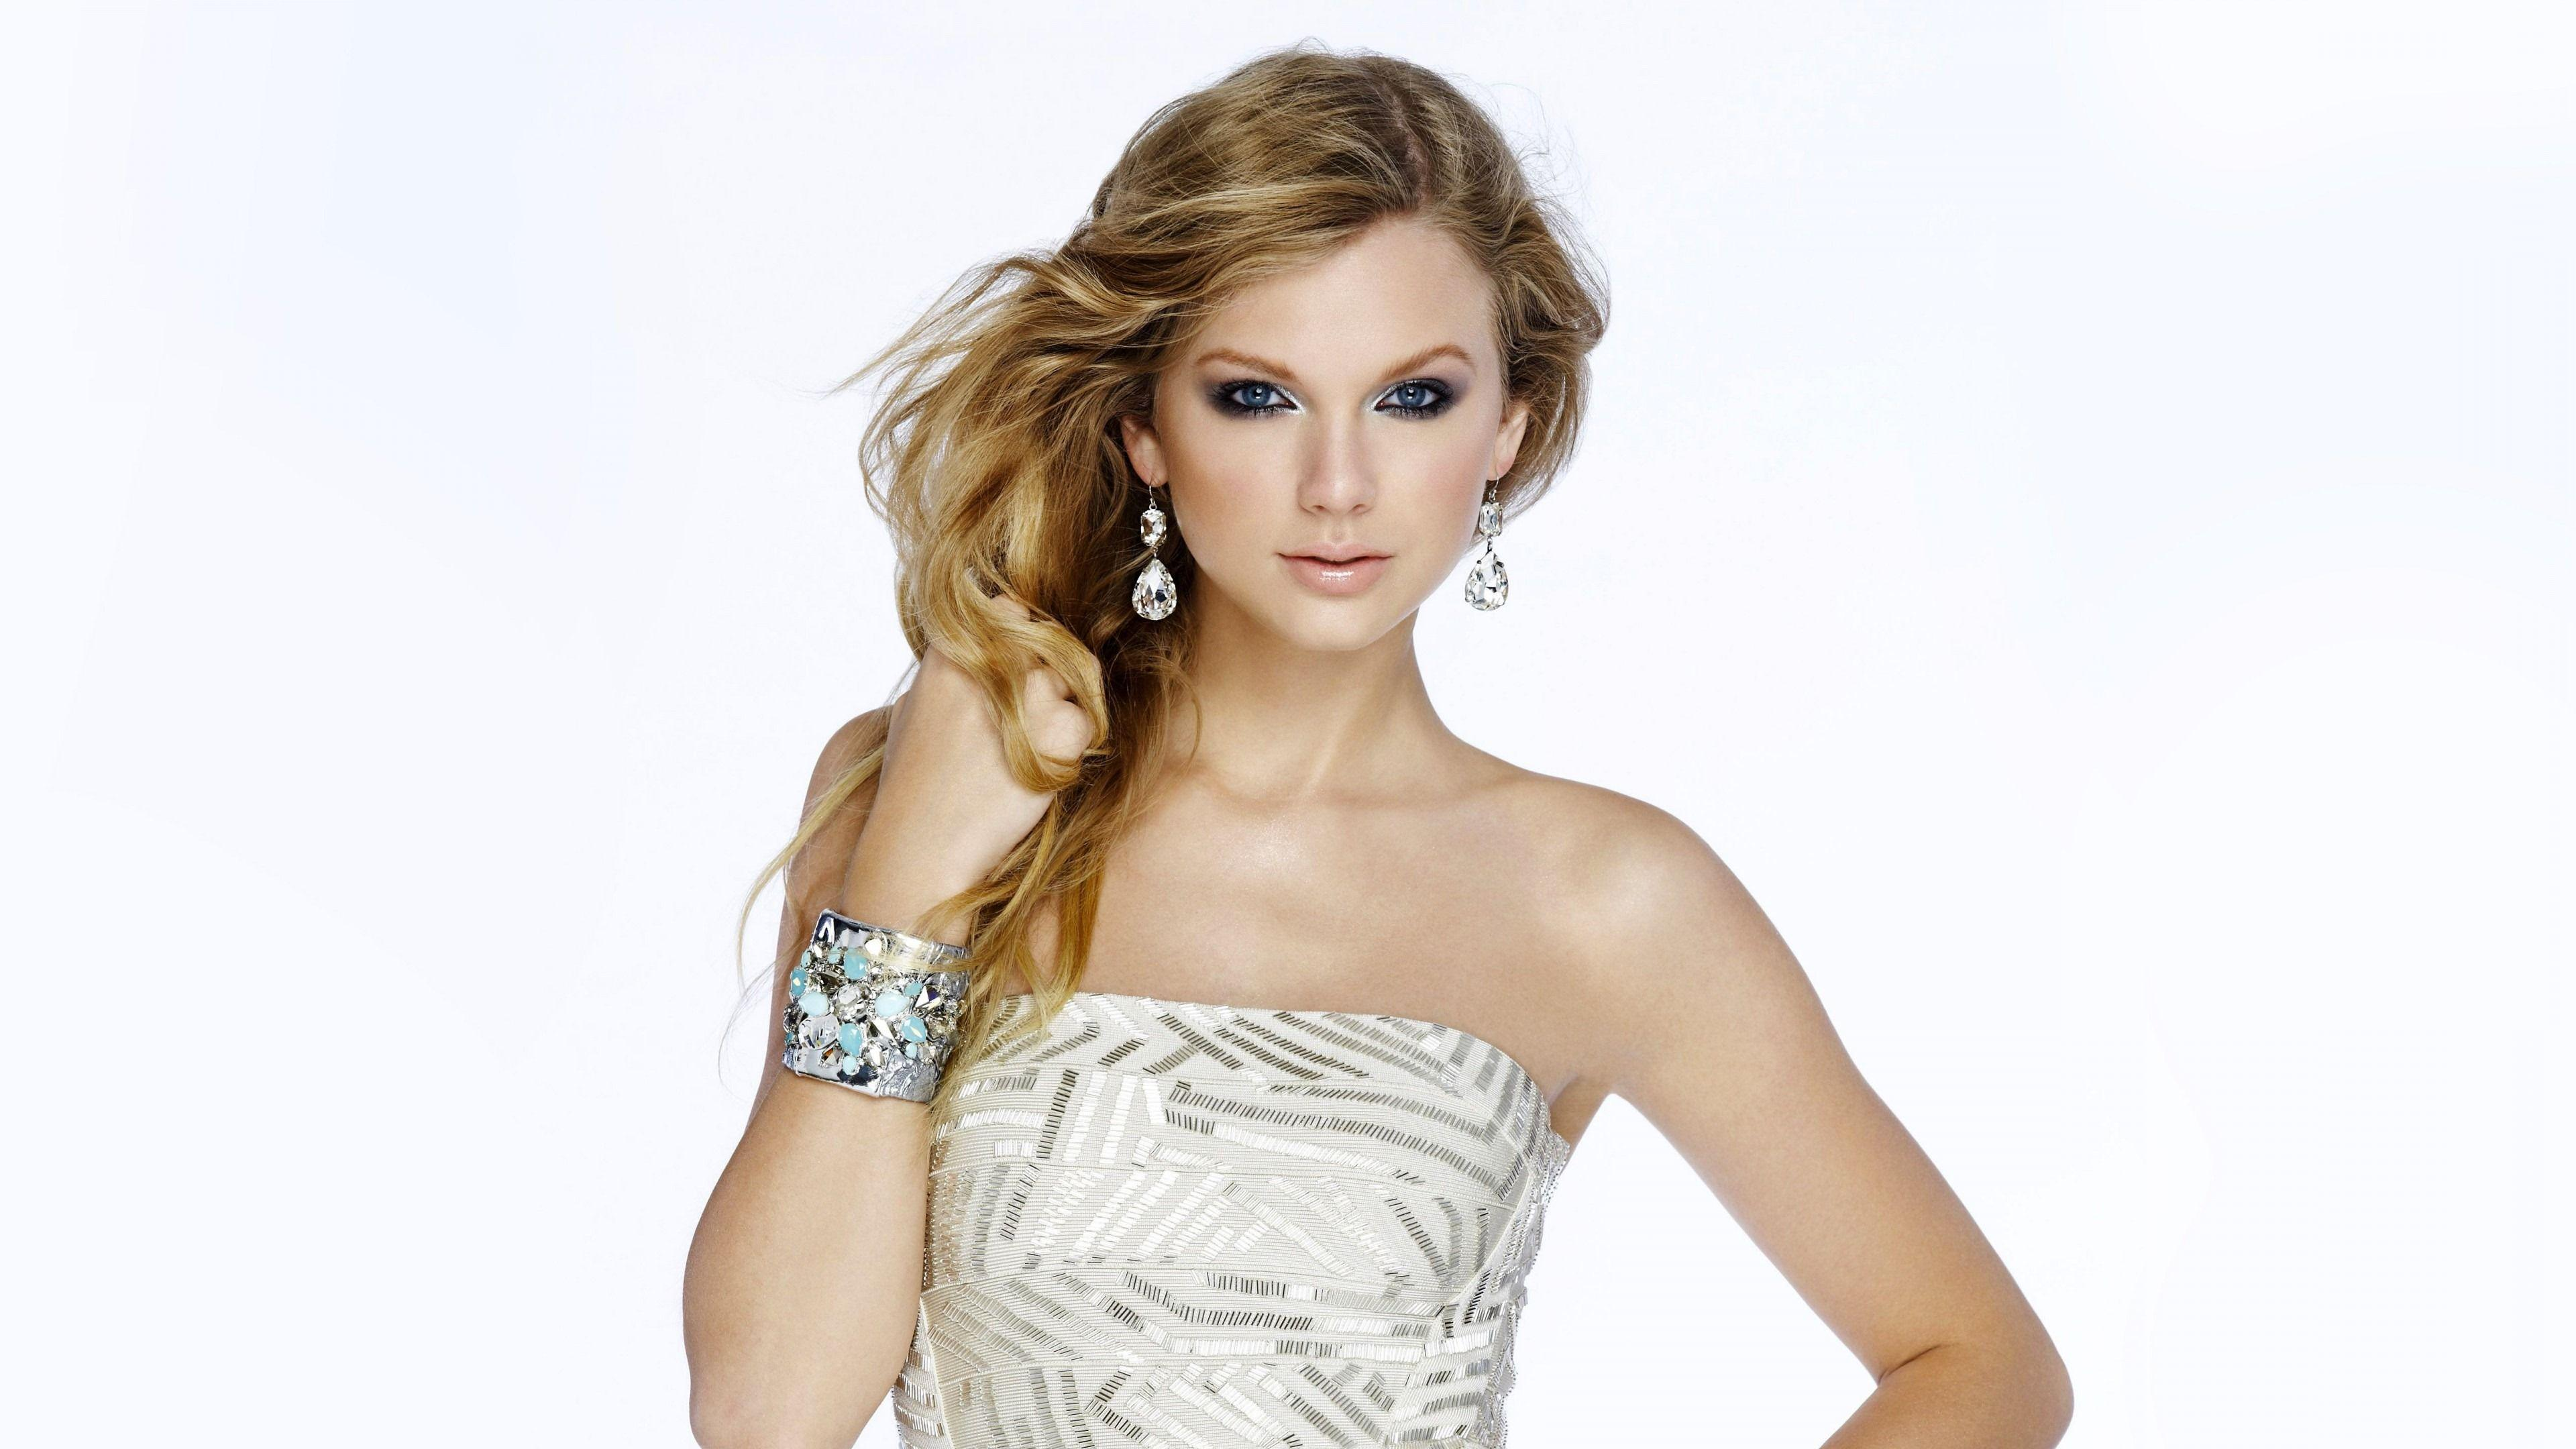 Taylor Swift 2017 4k Wallpaper 12013 - Baltana